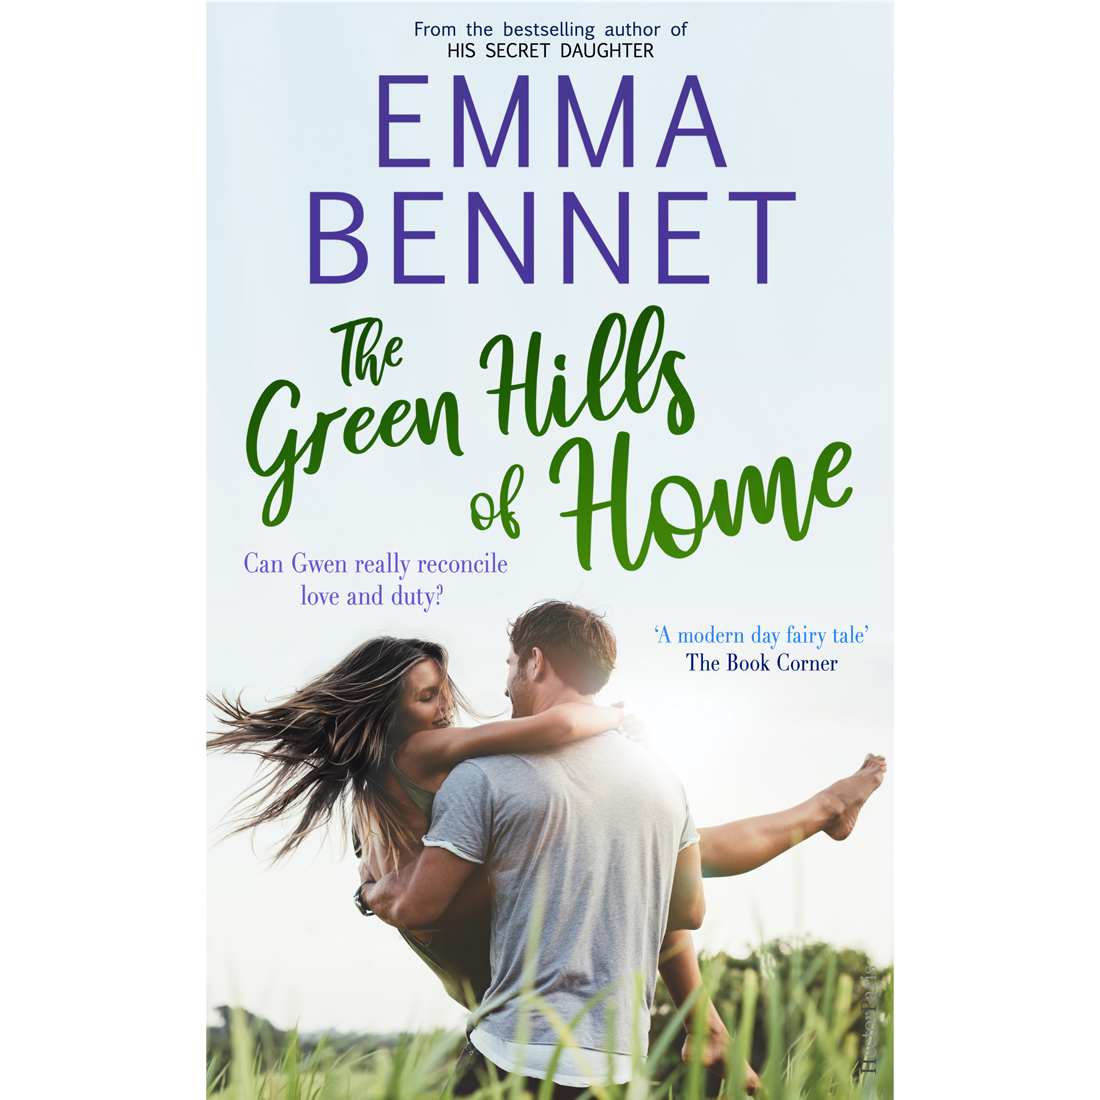 The Green Hills of Home by Emma Bennet